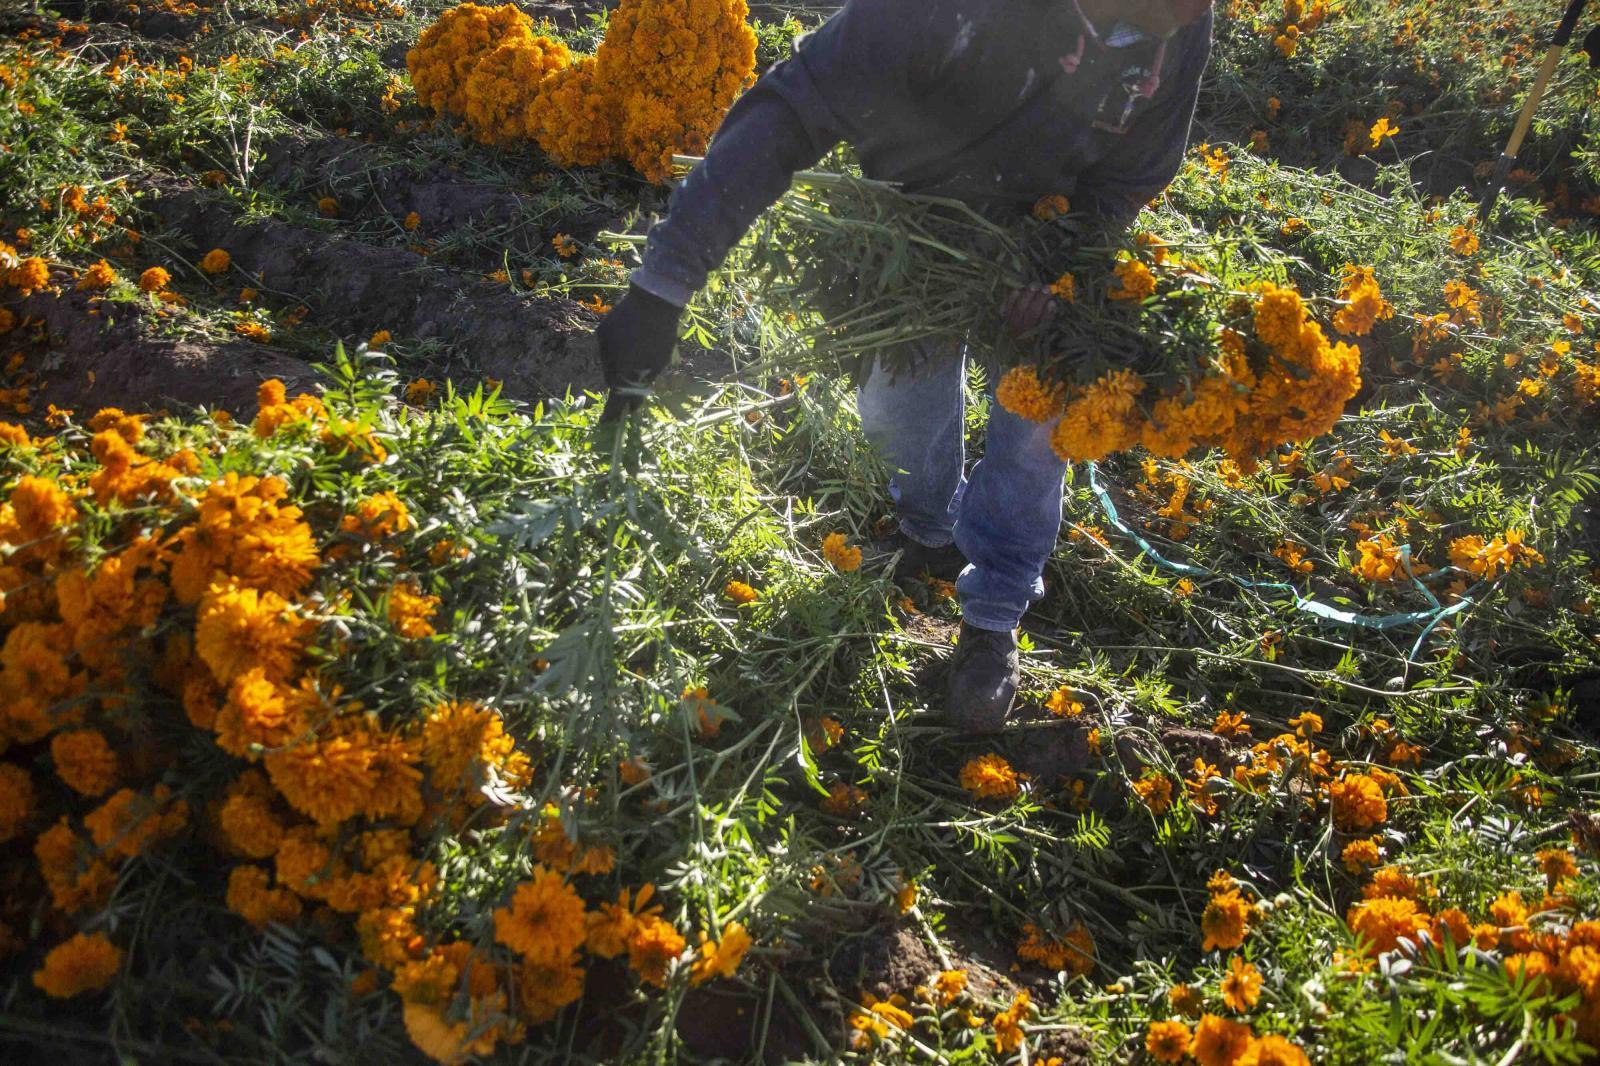 A worker harvests Cempasúchil flowers in the neighborhood of San Pedro Mexicaltzingo, Puebla, Mexico on Sunday, October 25, 2020. In the midst of the Covid pandemic, farm workers have been affected by the low sales of this flower, which is traditionally used in Day of the Dead offerings in Mexico. Photographer Koral Carballo /Bloomberg